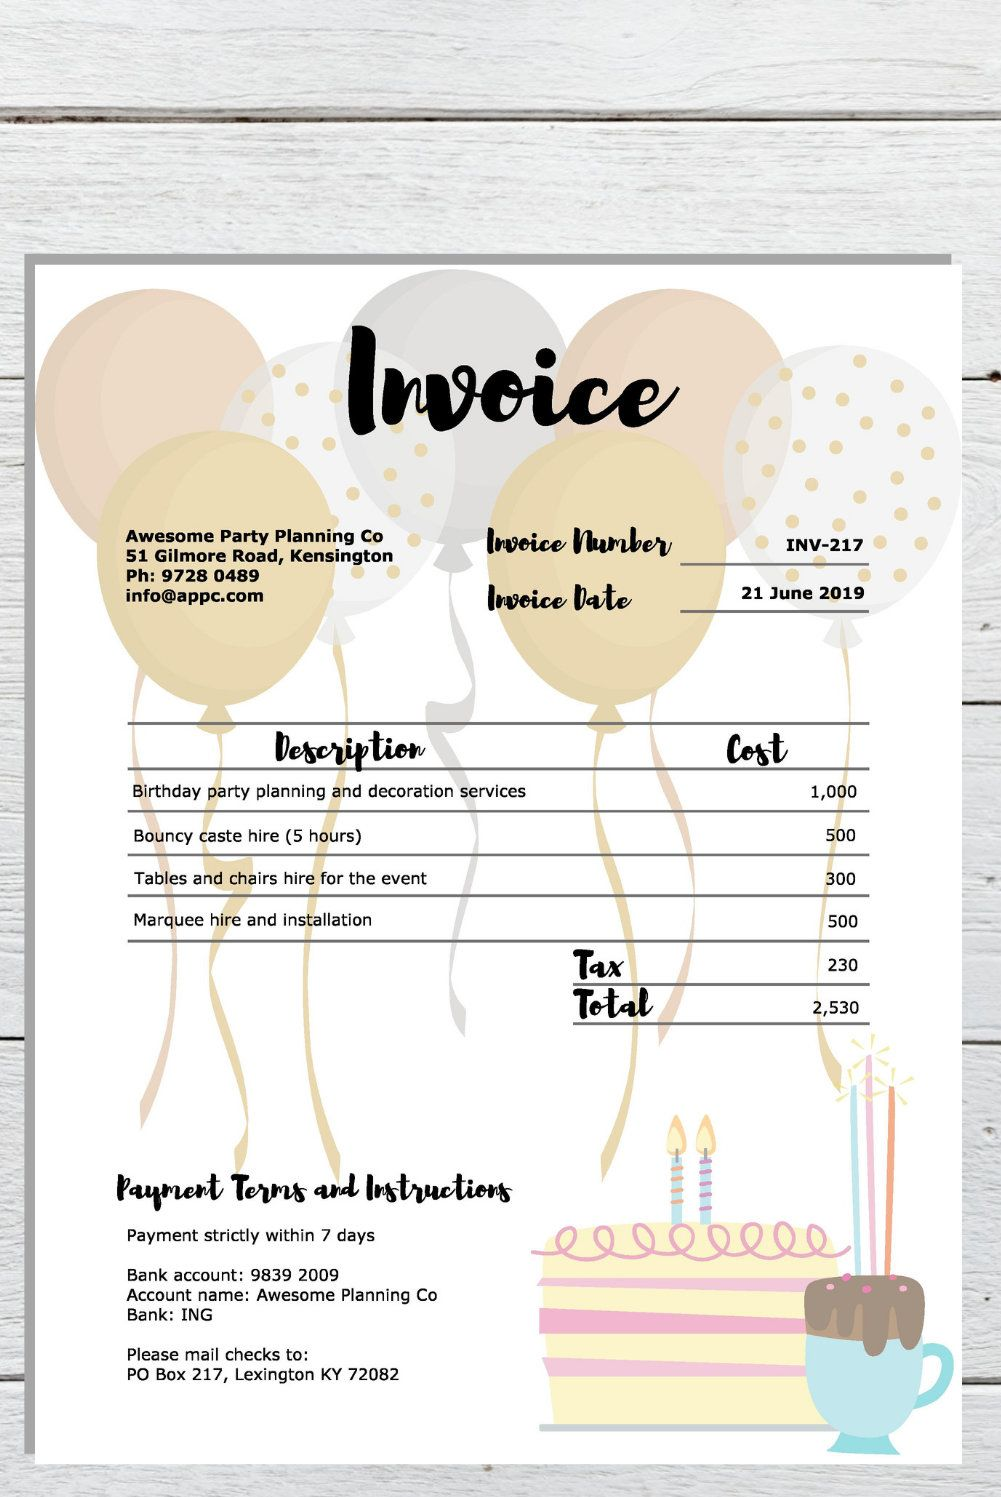 Event Planning Invoice Template And Receipt Template Bundle Etsy Party Planning Business Party Planner Business Party Planning